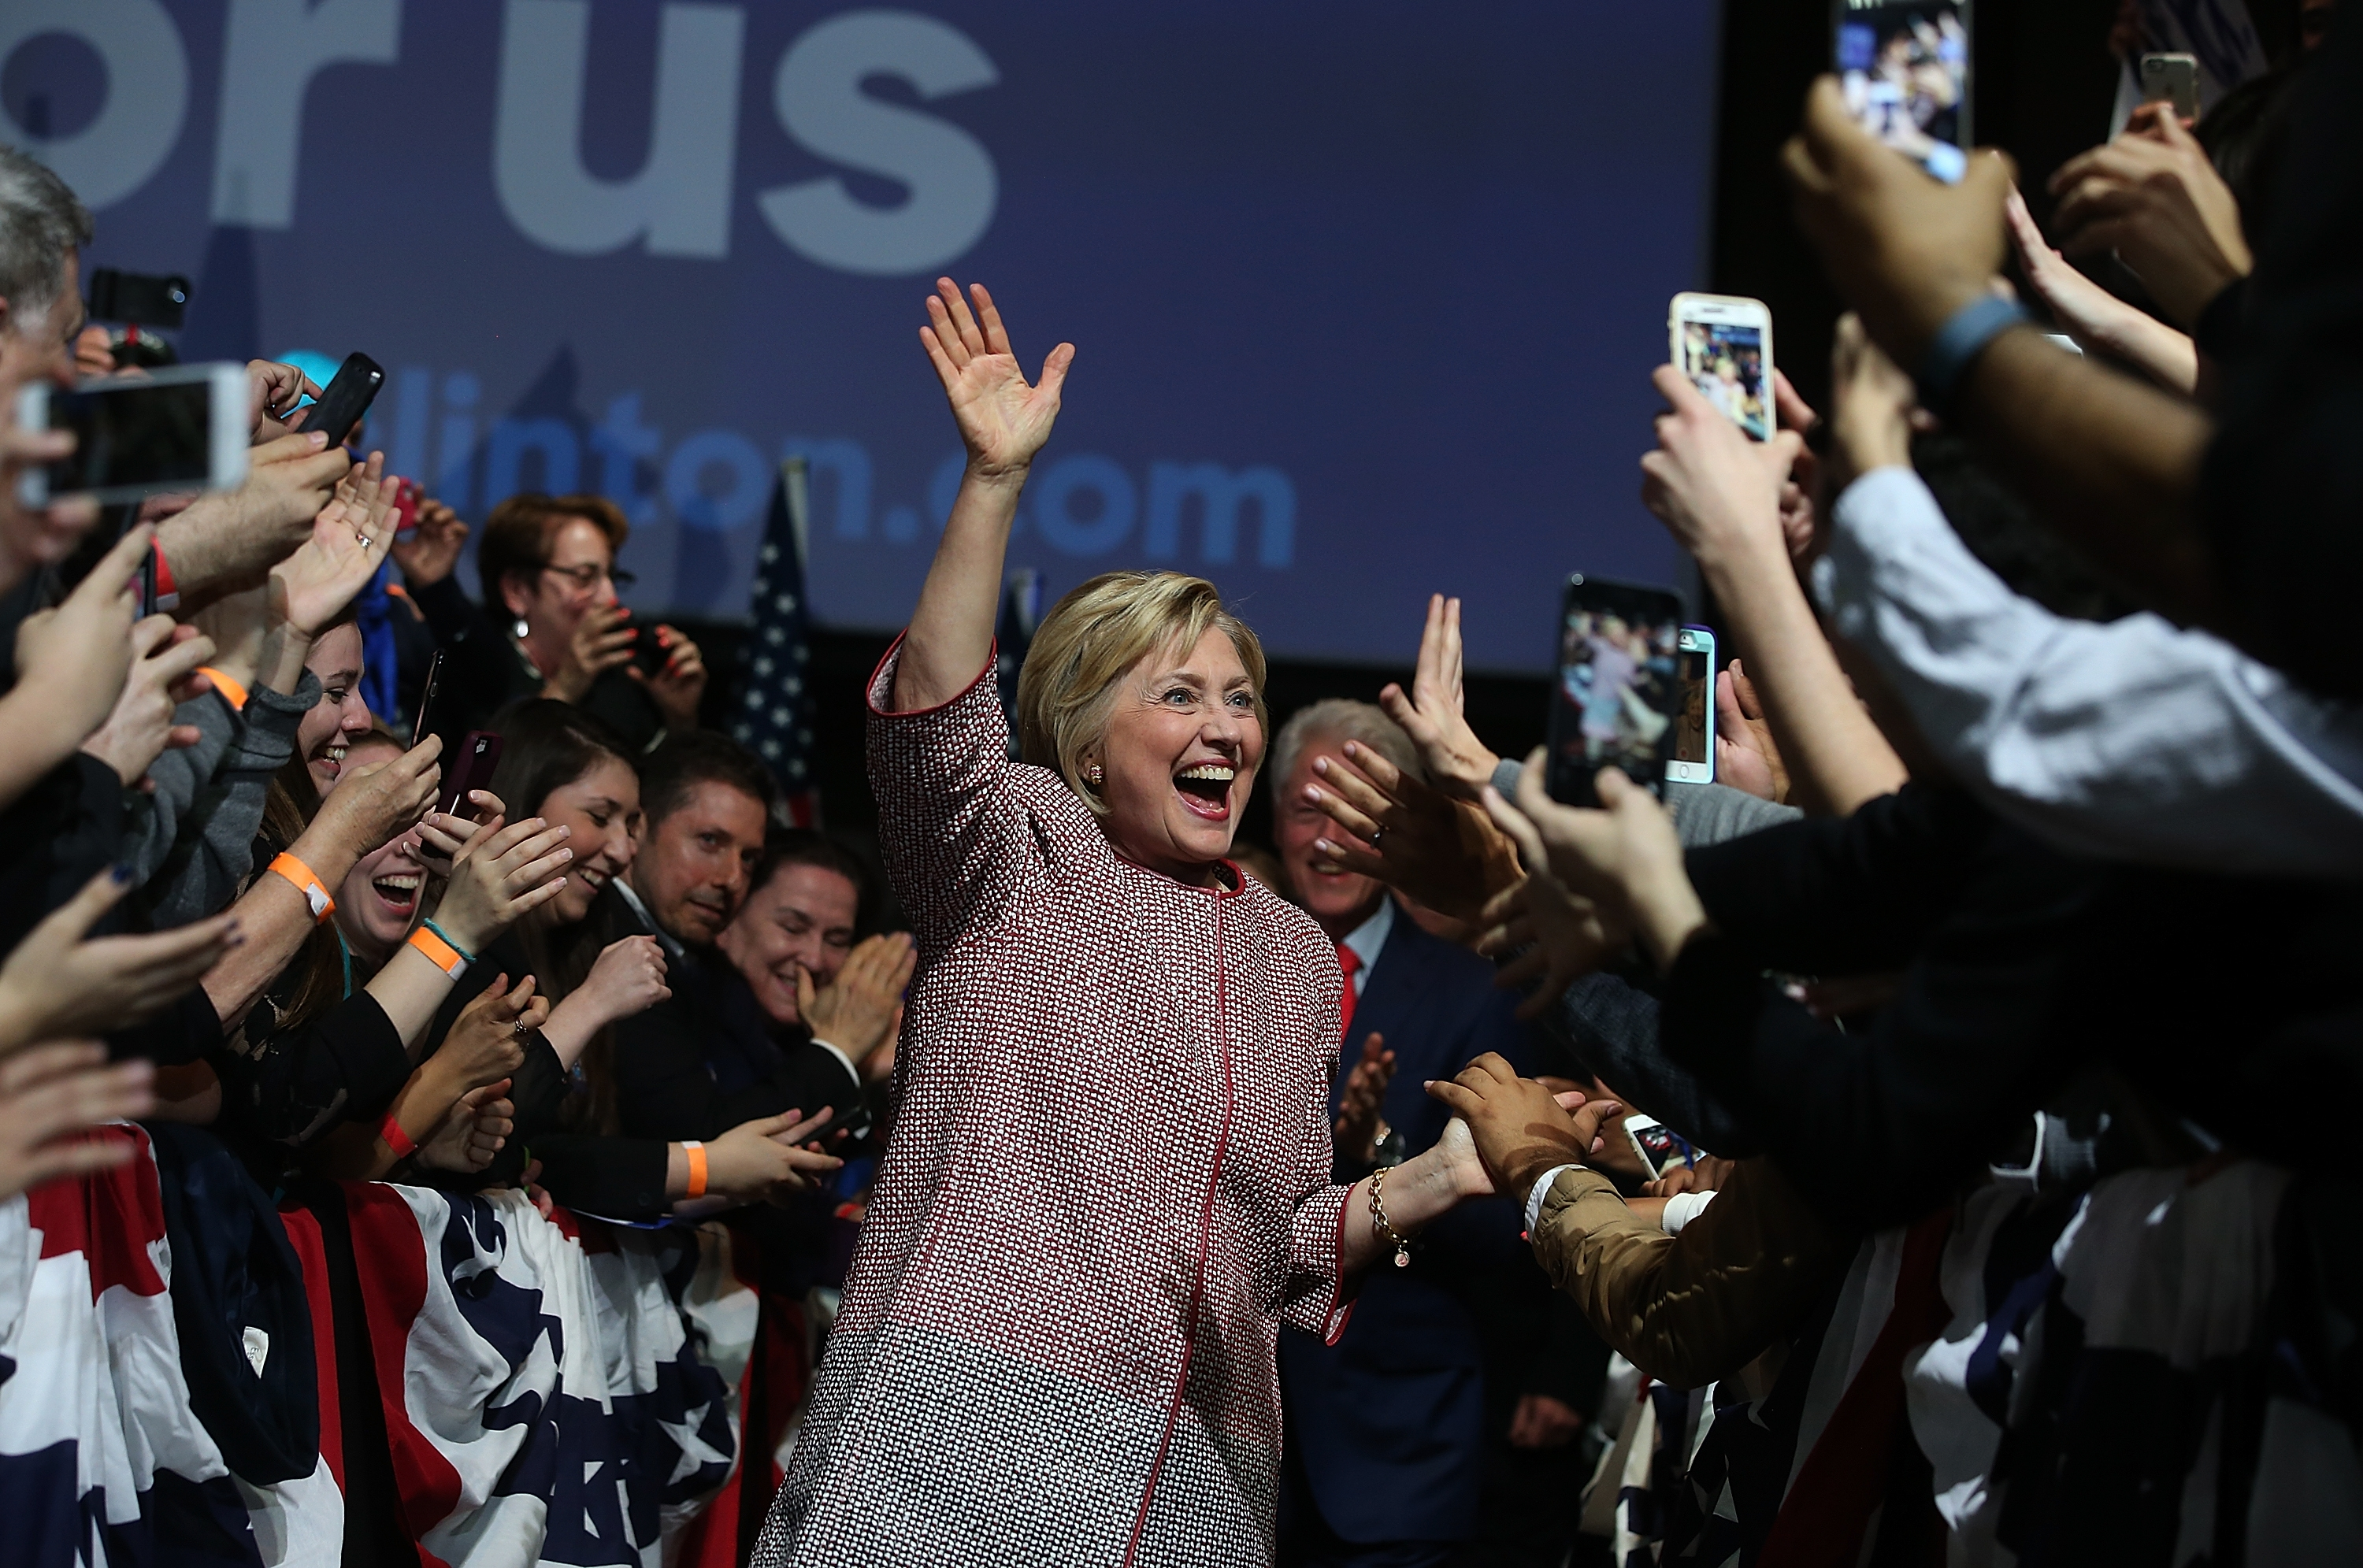 Democratic presidential candidate former Secretary of State Hillary Clinton greets supporters celebrating her victory in the New York primary Tuesday night in New York City. (Getty Images)